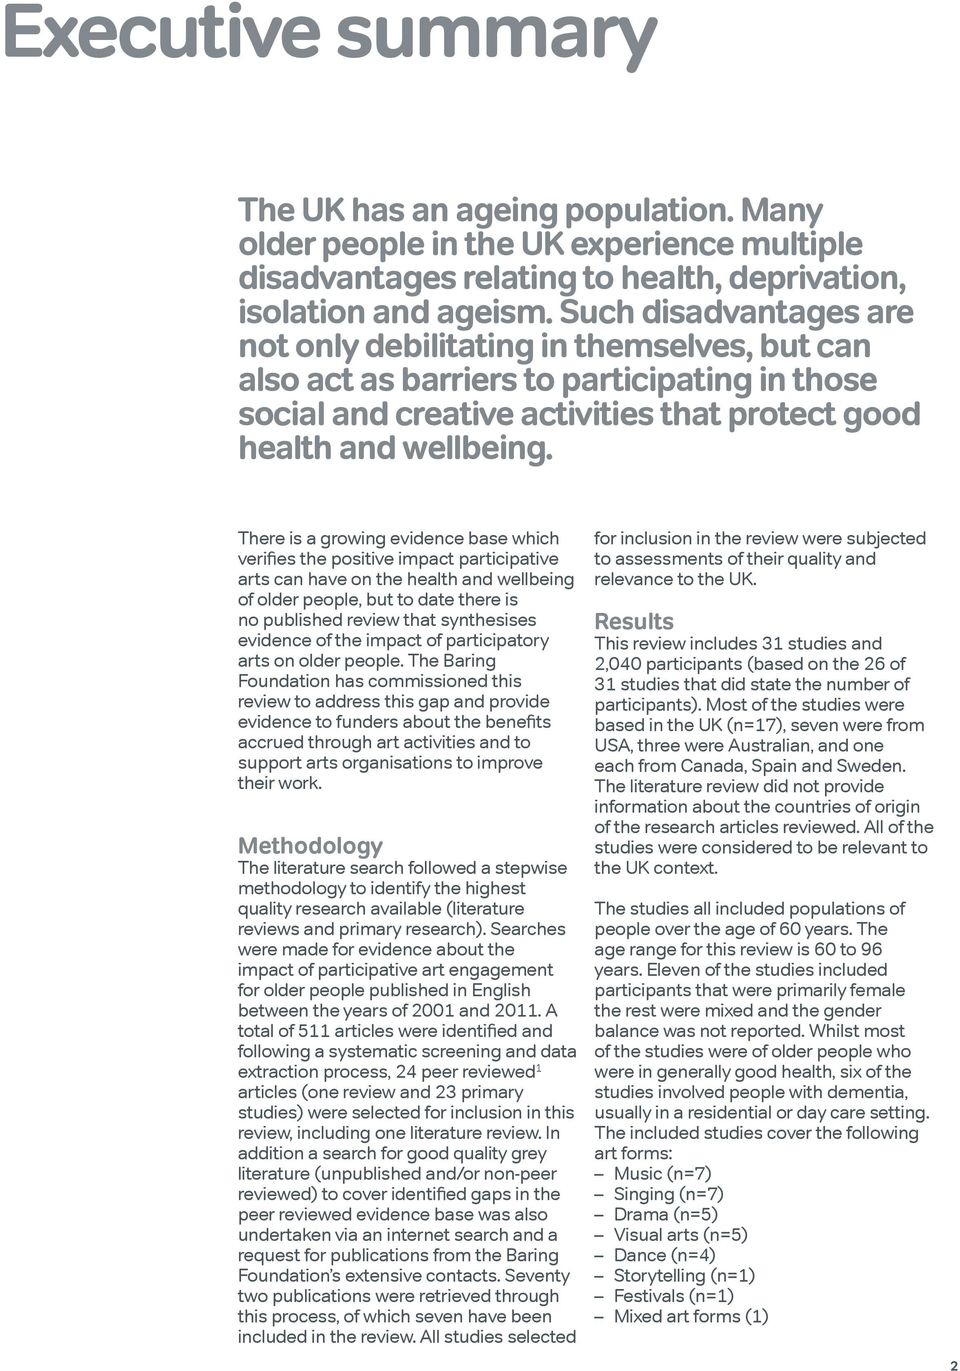 There is a growing evidence base which verifies the positive impact participative arts can have on the health and wellbeing of older people, but to date there is no published review that synthesises